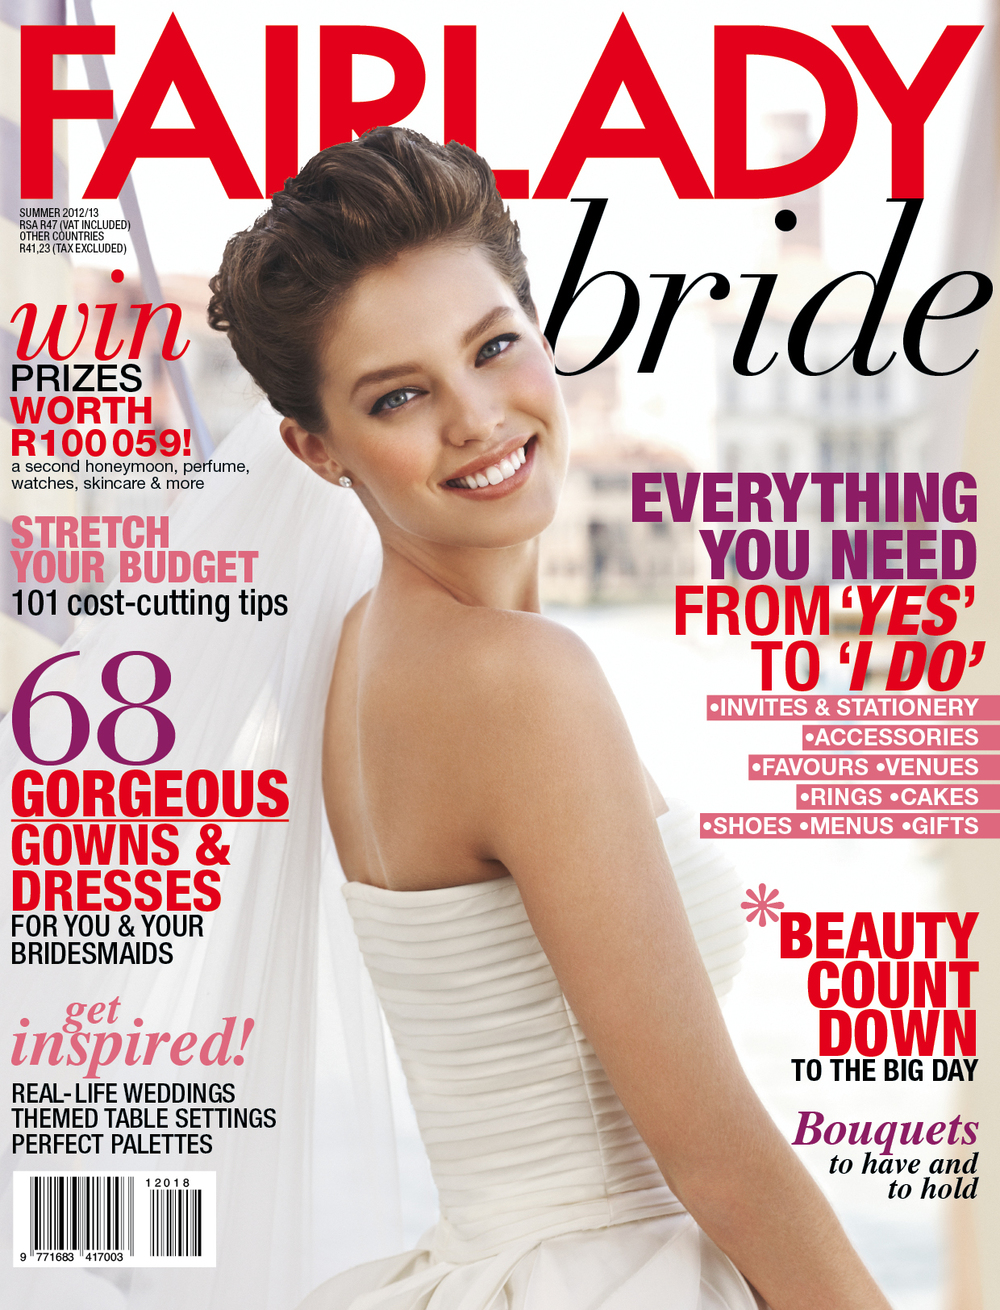 Fly bride cover.jpg